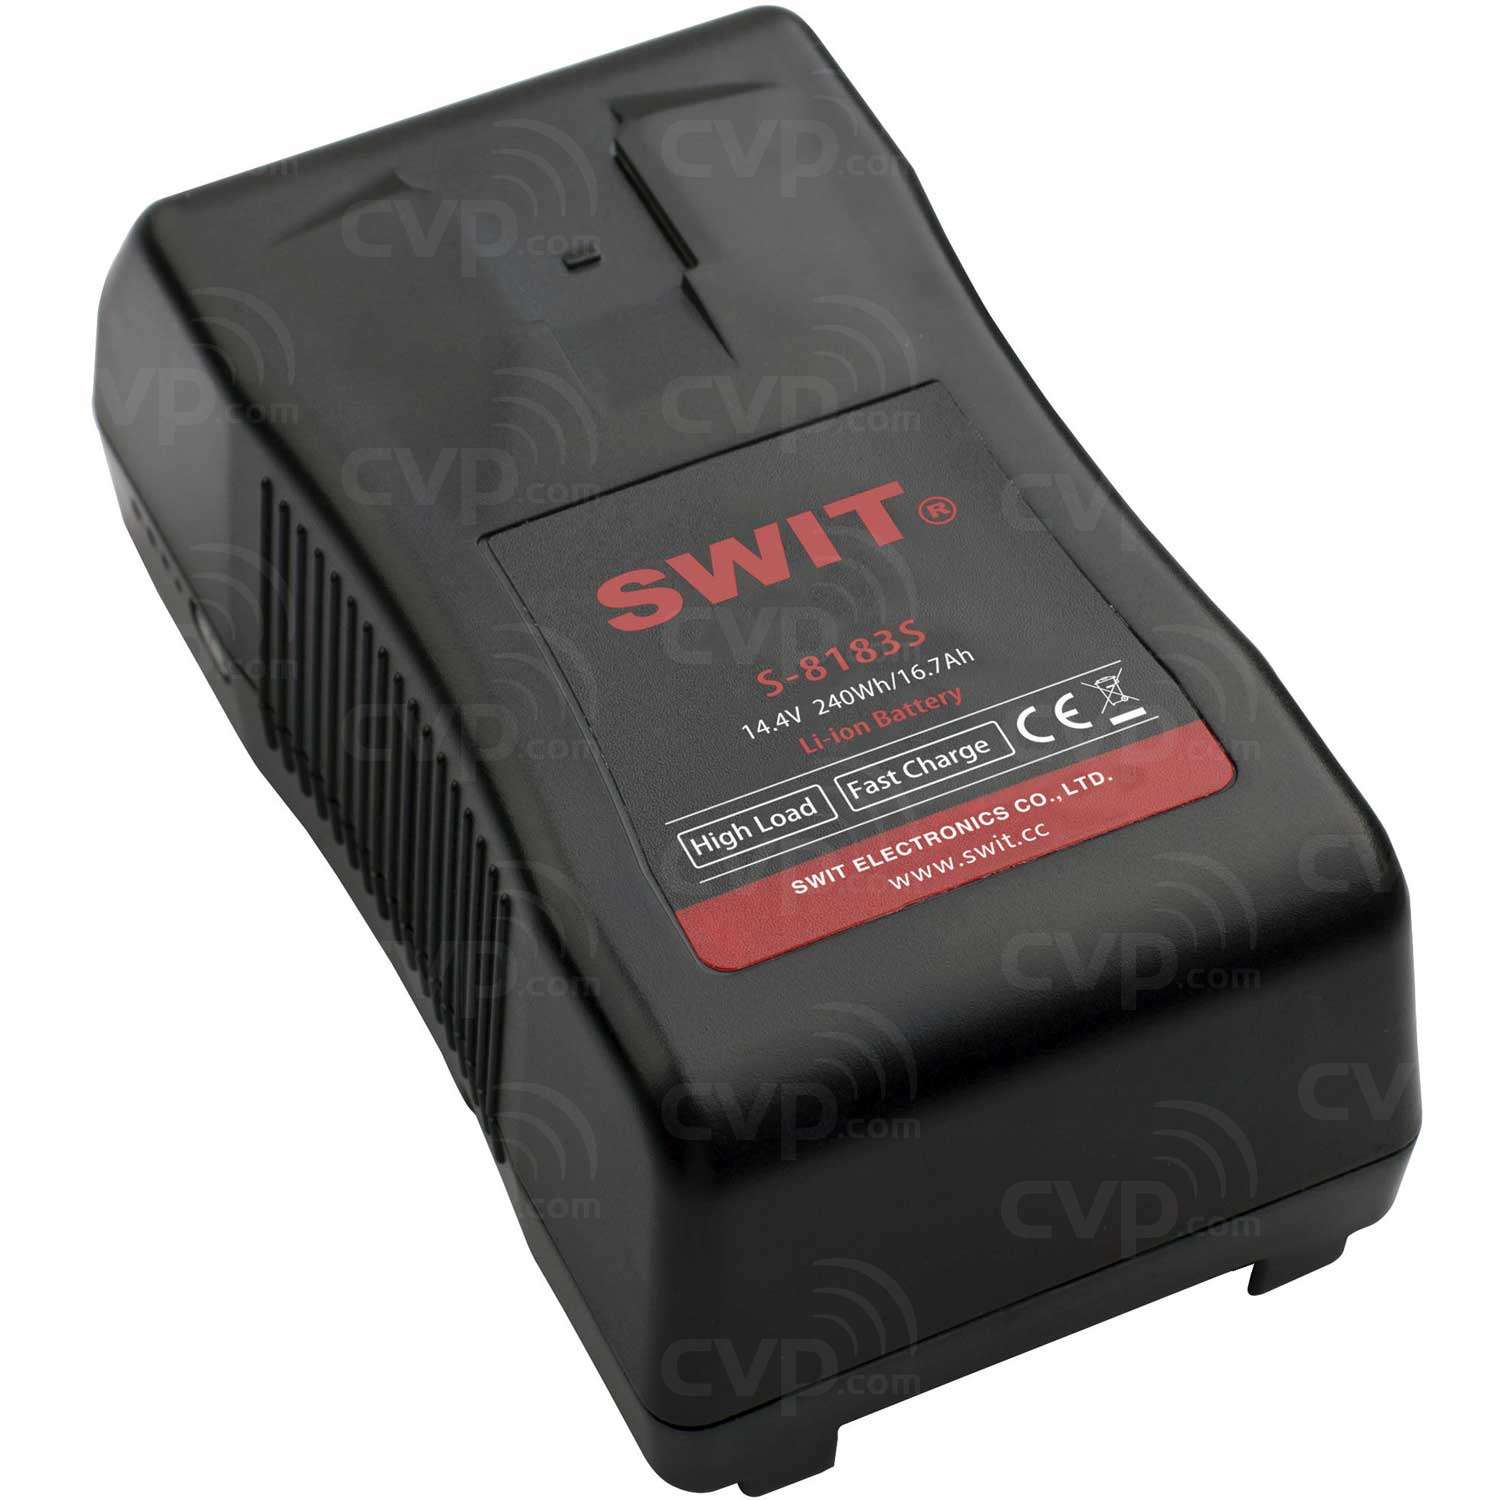 Swit Electronics S8183S (S-8183S) 240Wh High Load V-mount Battery Pack